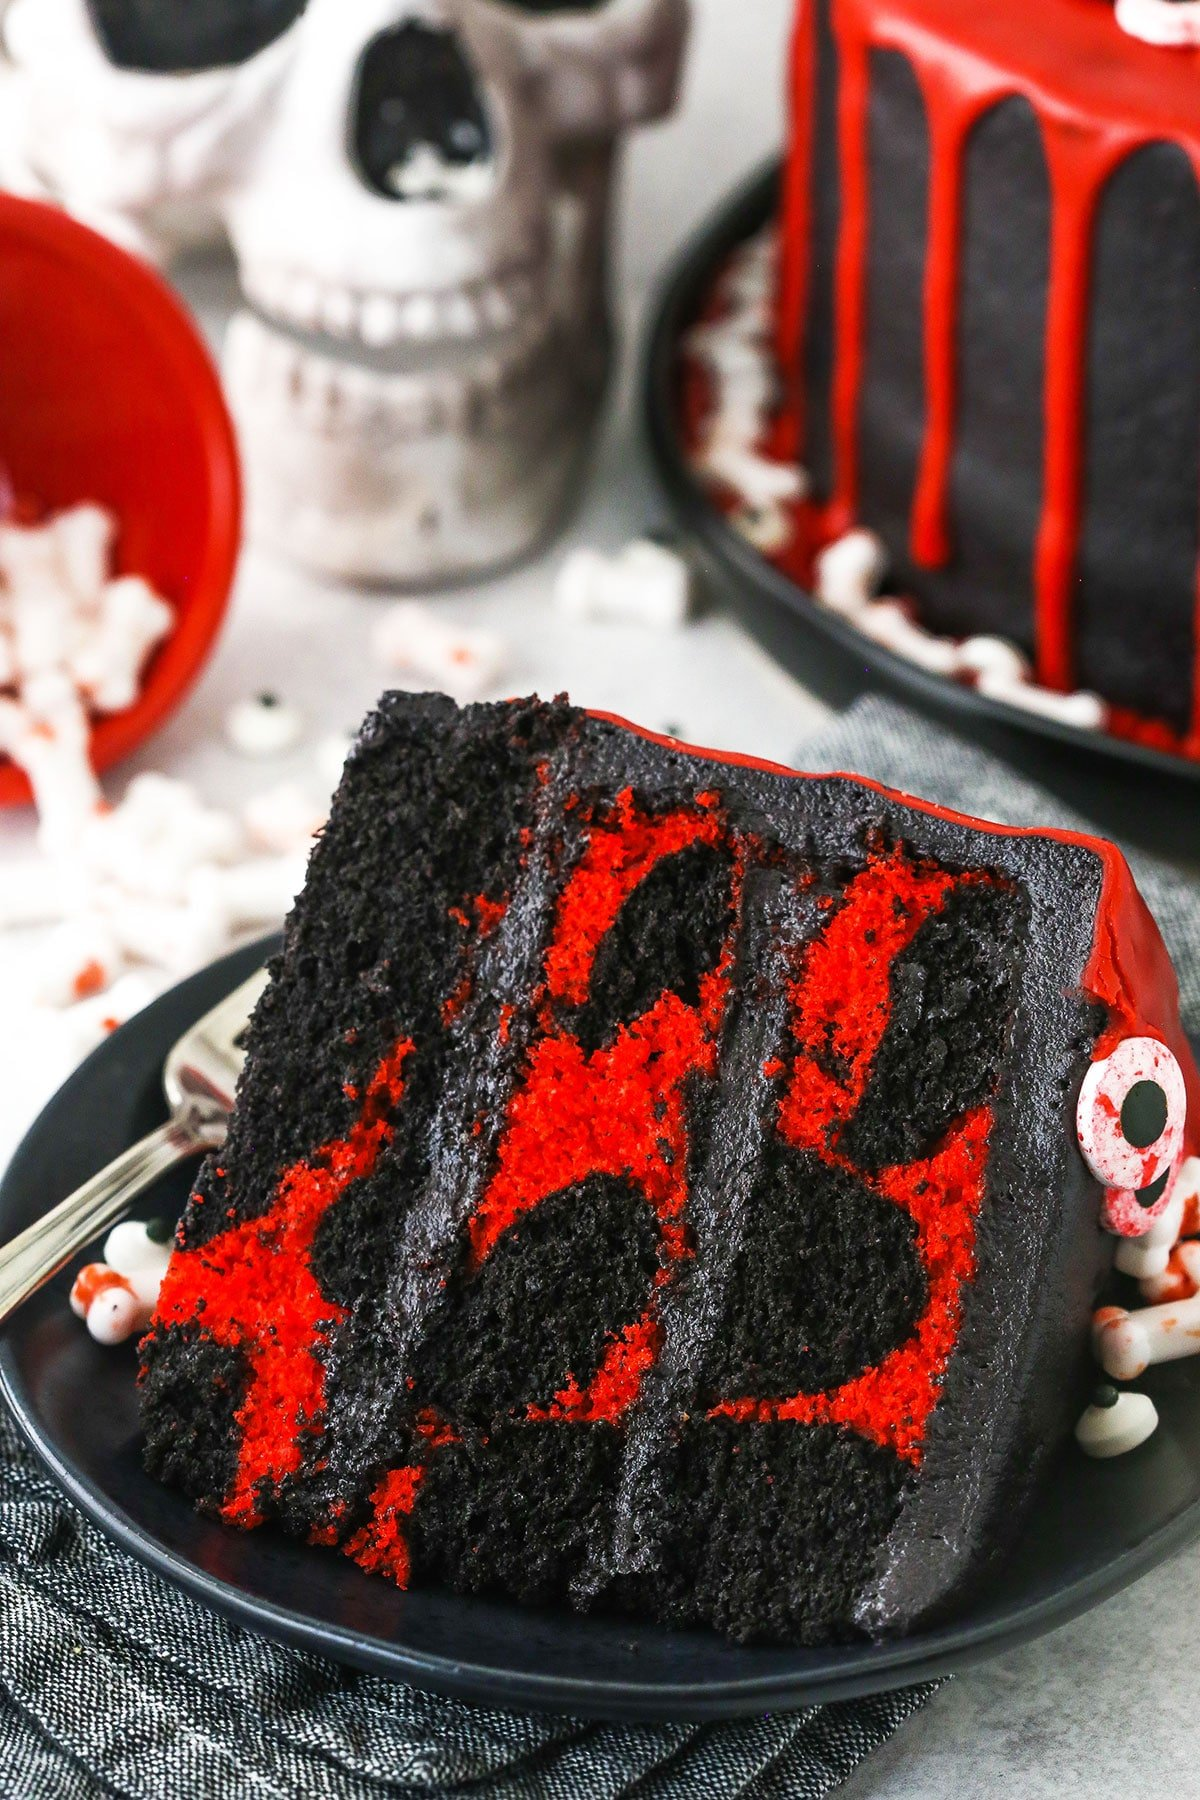 red and black marble cake on black plate